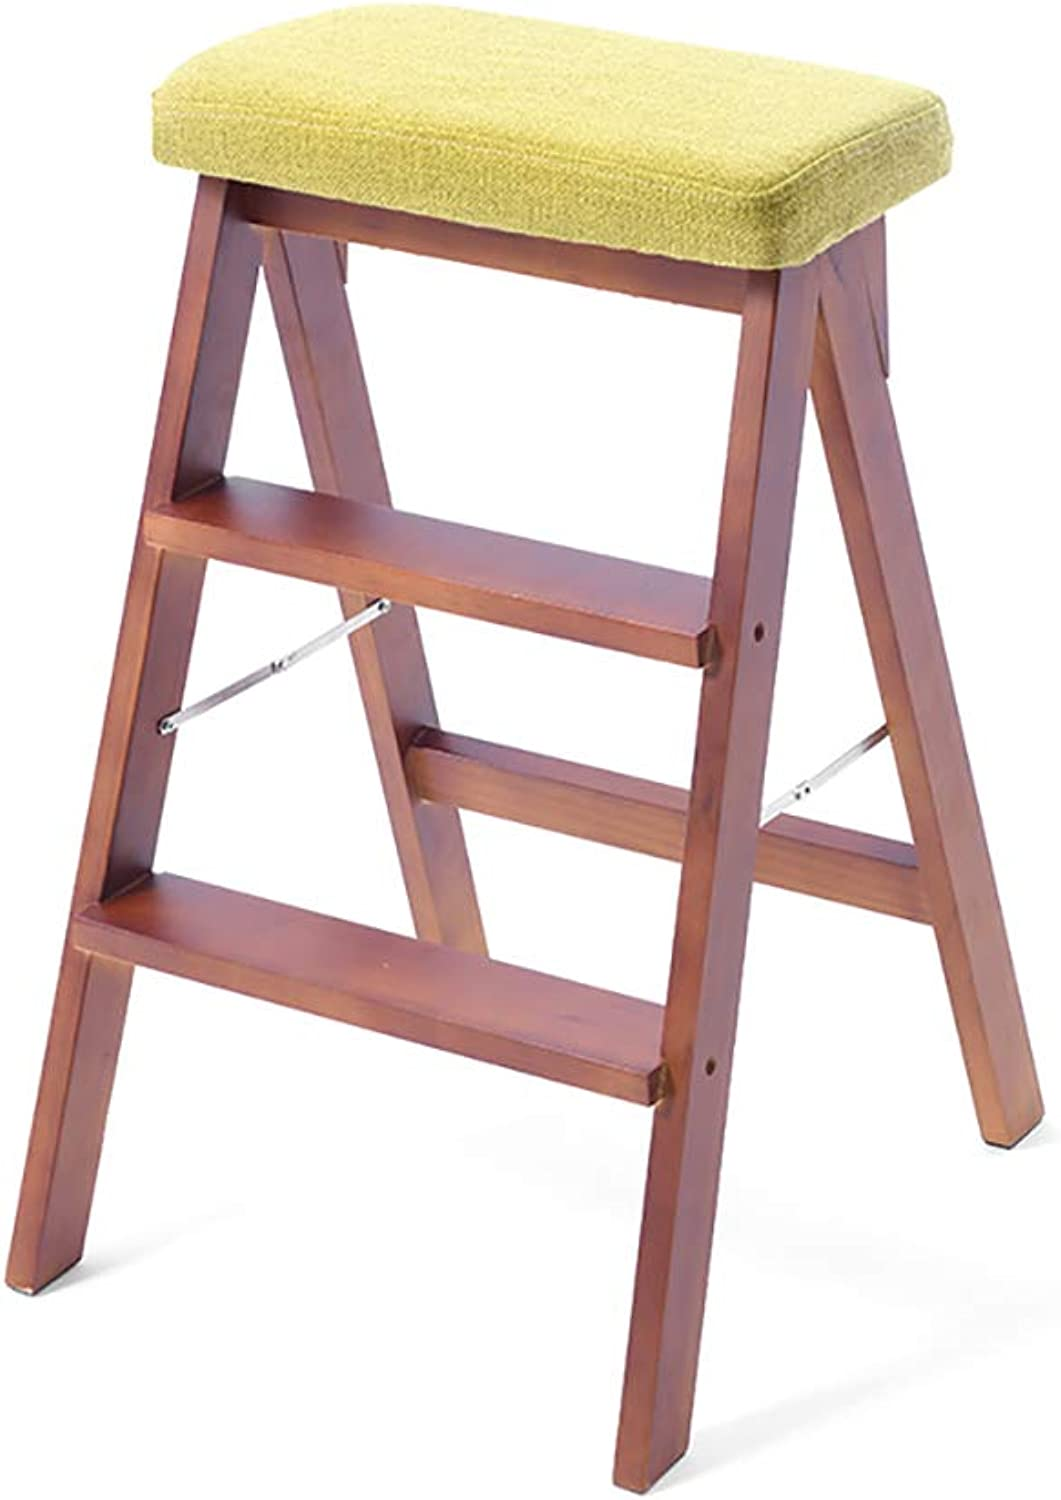 Solid Wood Three Stair Stool Multi-Storey Staircase Home Stool Indoor Ladder 3rd Ladder,7 colors (color   E)